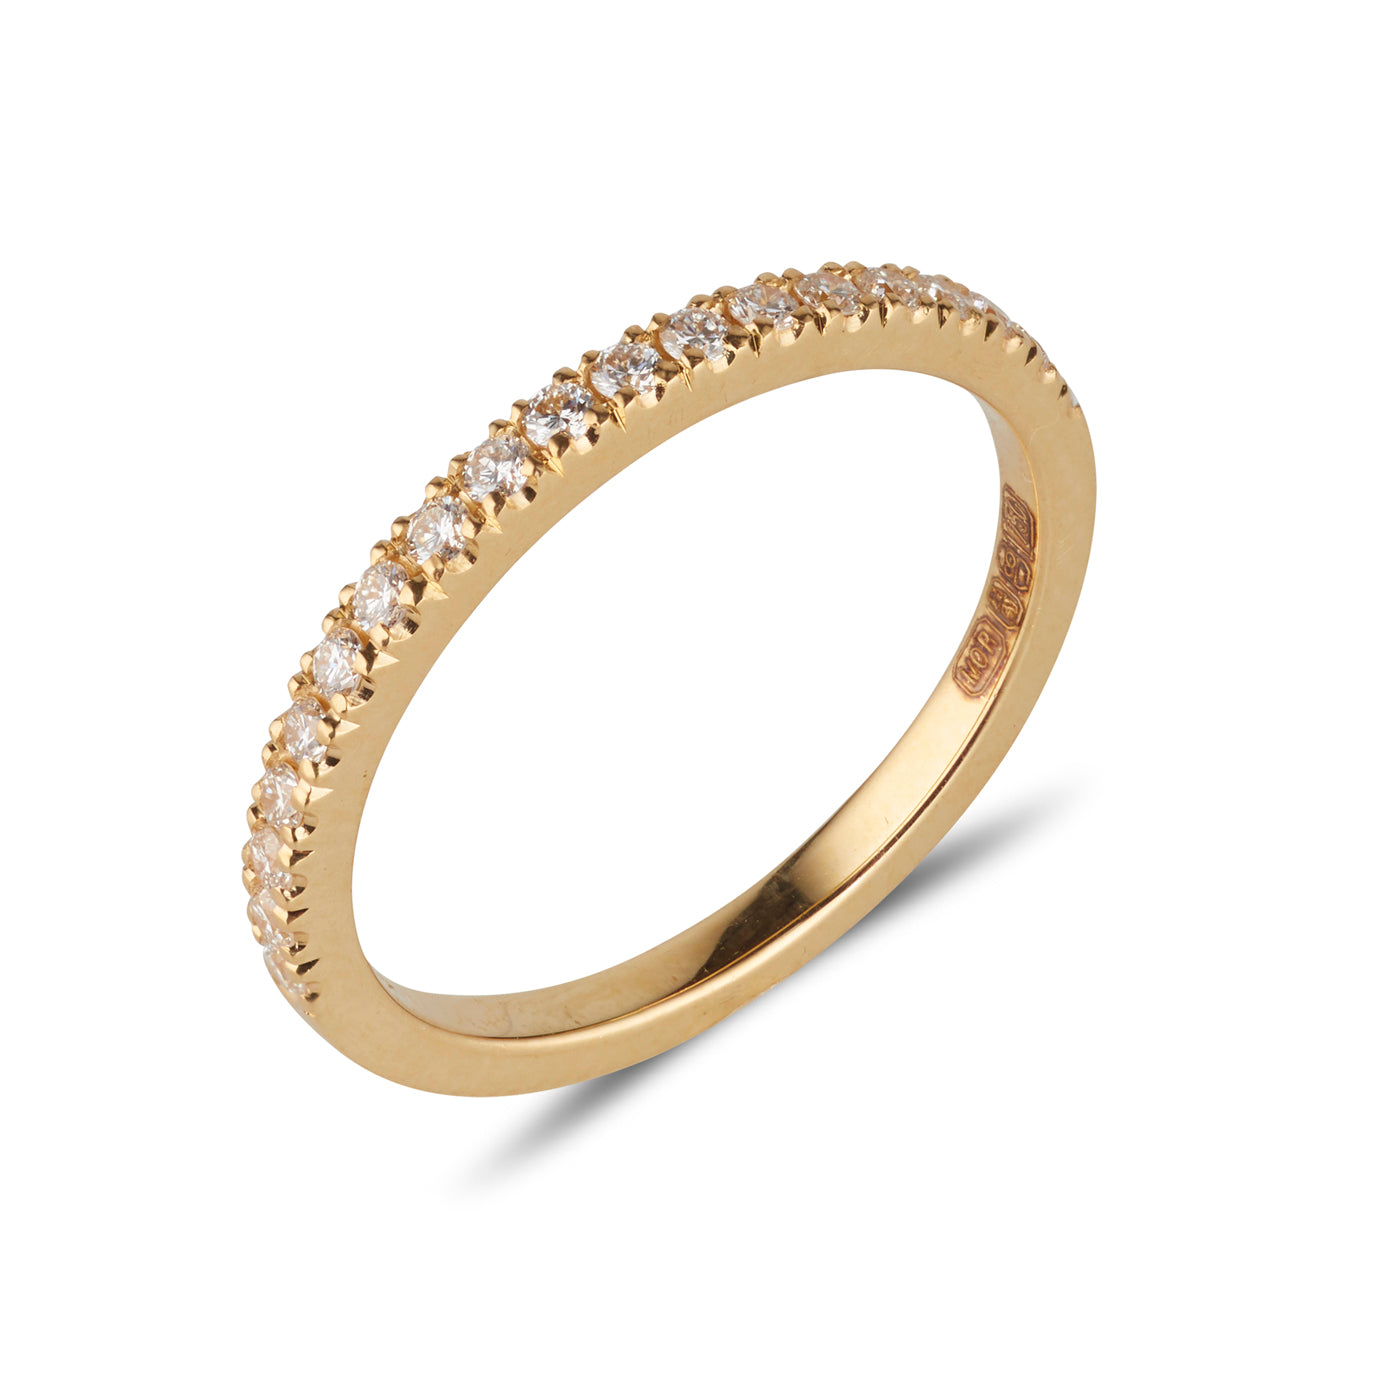 18kt Yellow Gold Band with White Diamonds - MoMuse Jewellery